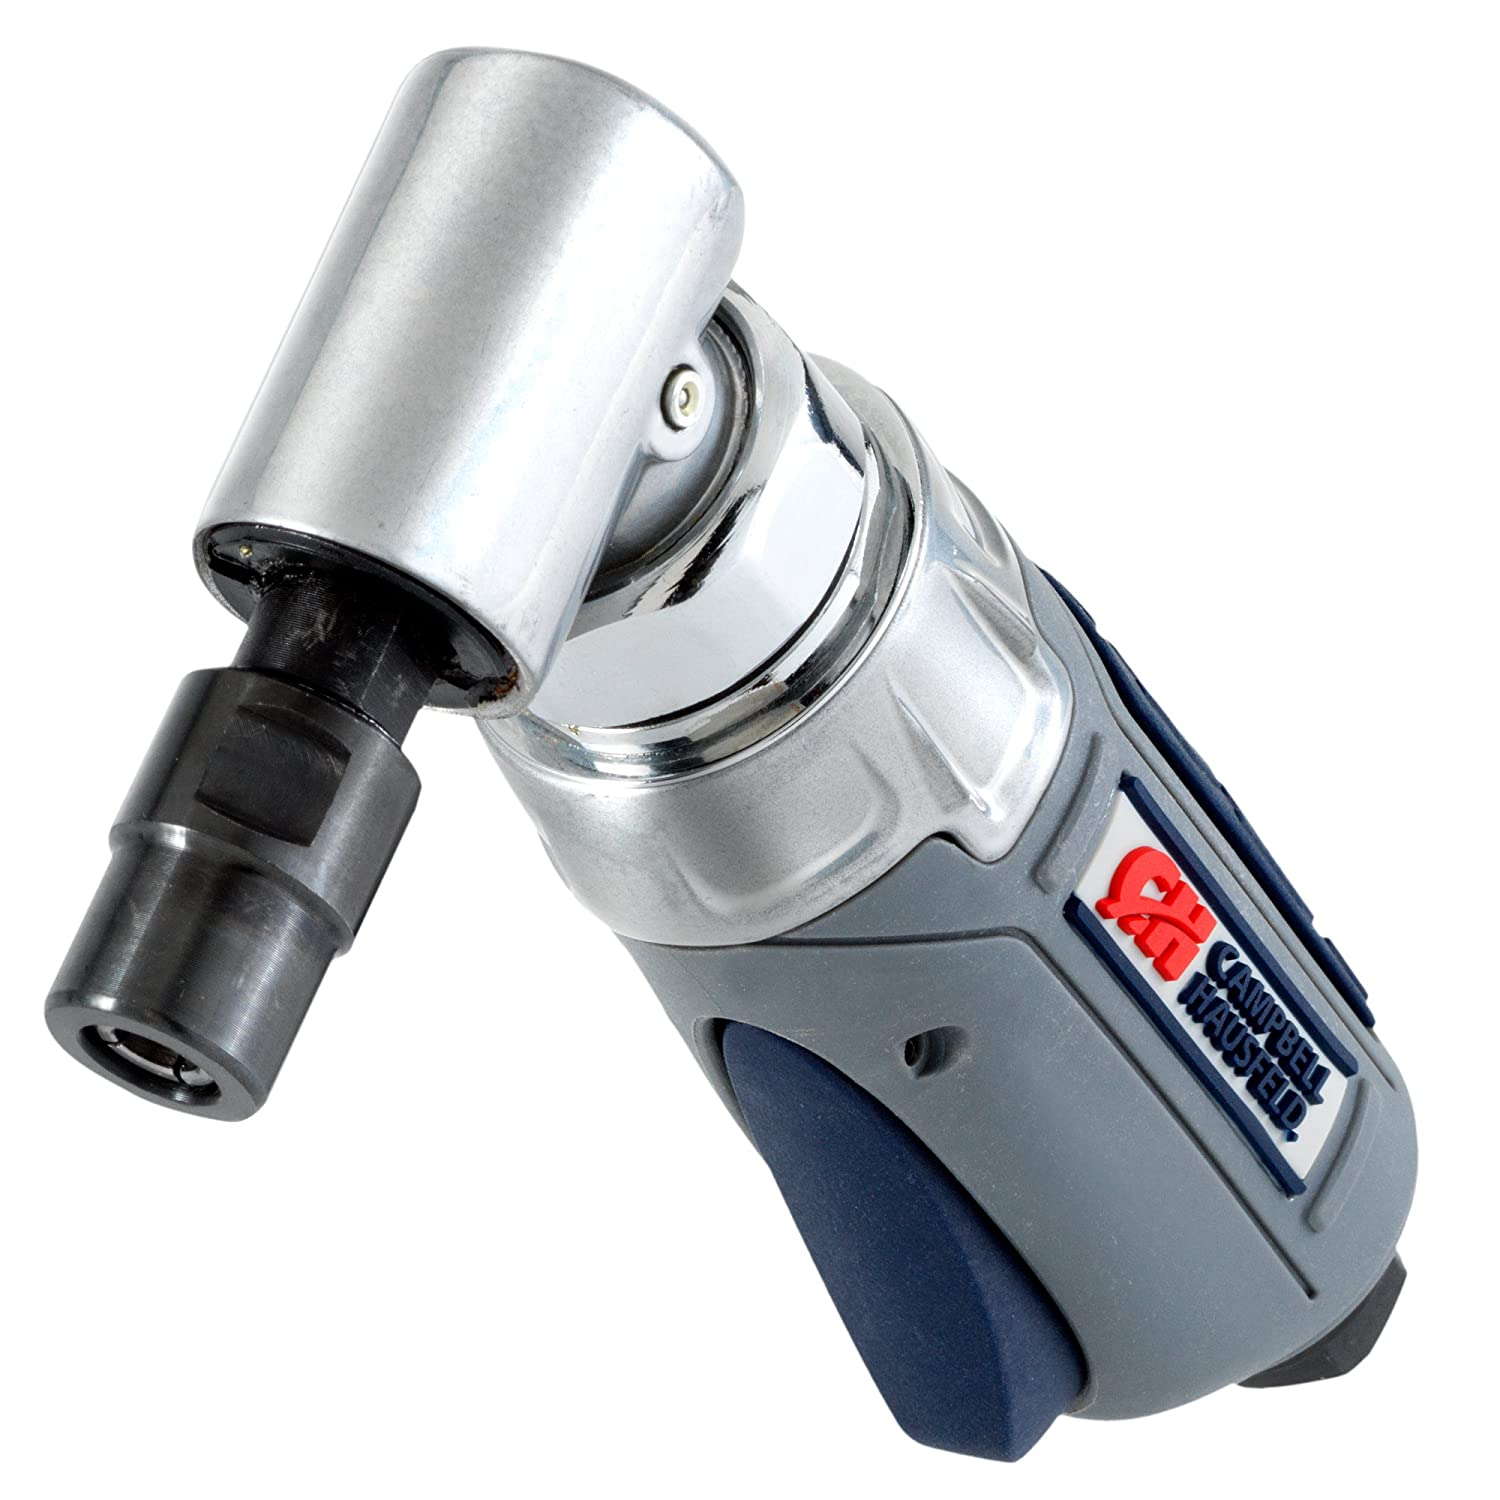 Angle Die Grinder, 20,000 RPM with Flow Adjustment, Get Stuff Done Campbell Hausfeld XT251000